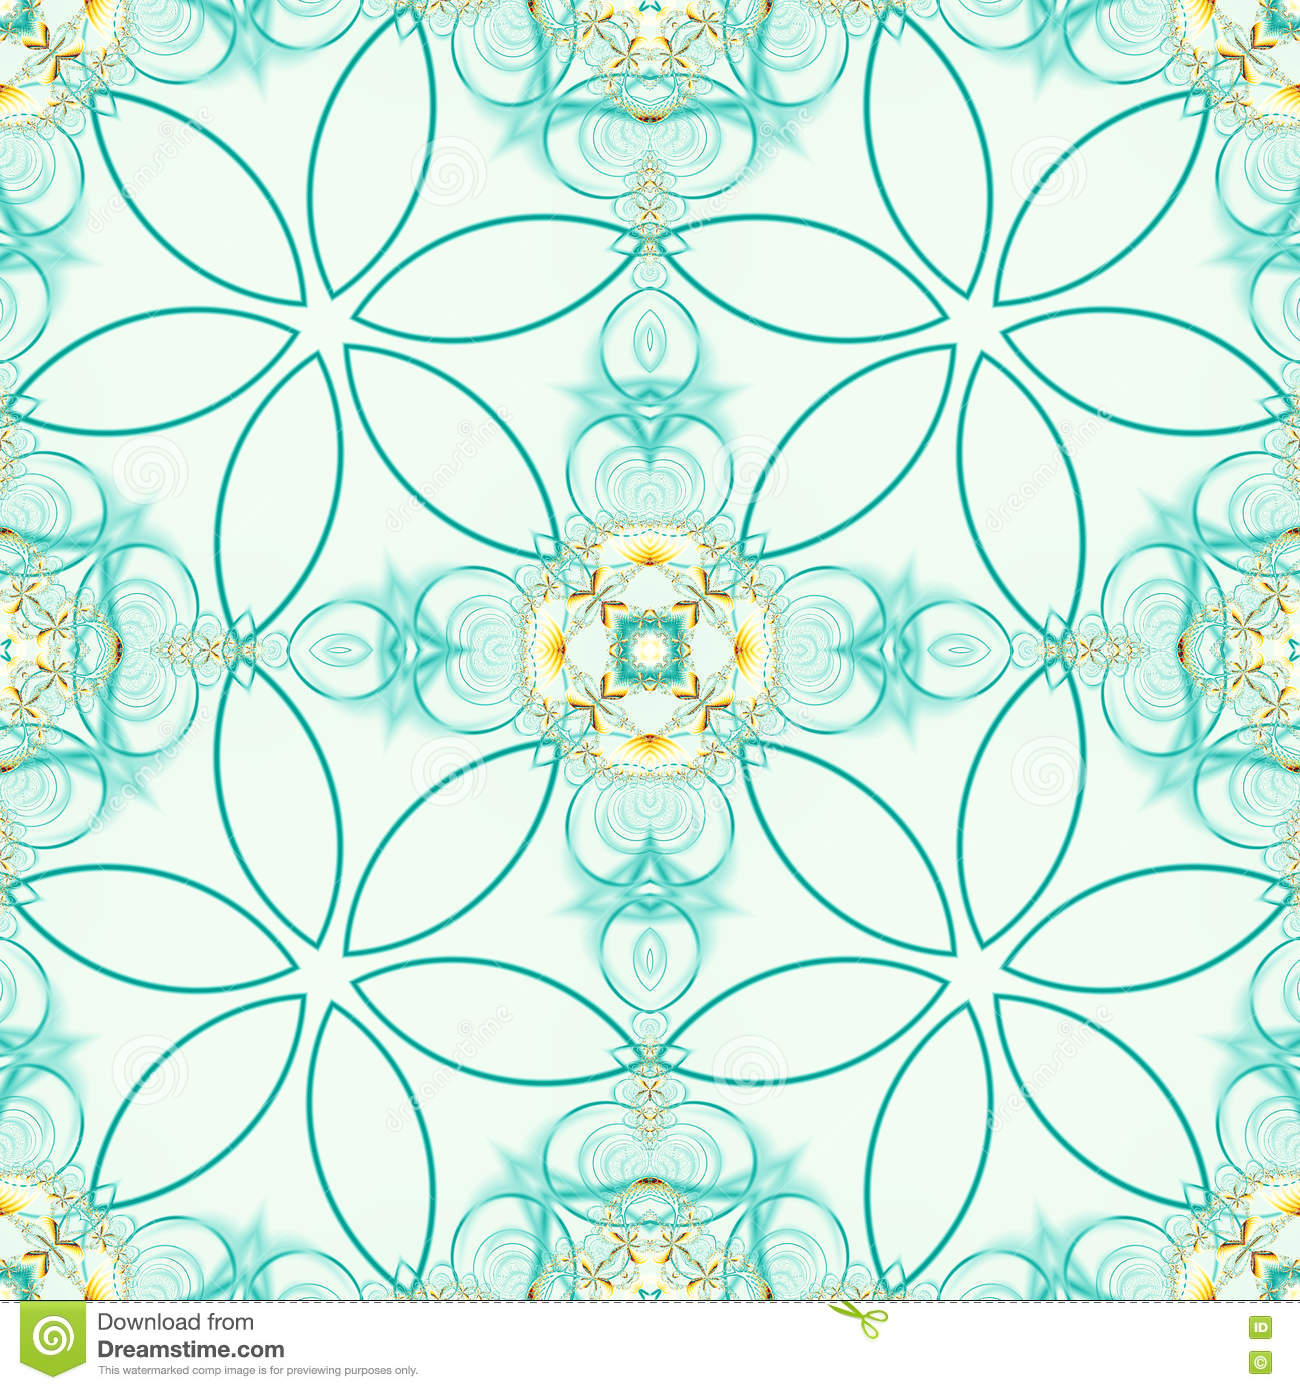 Green seamless fractal based tile with stylized flower design